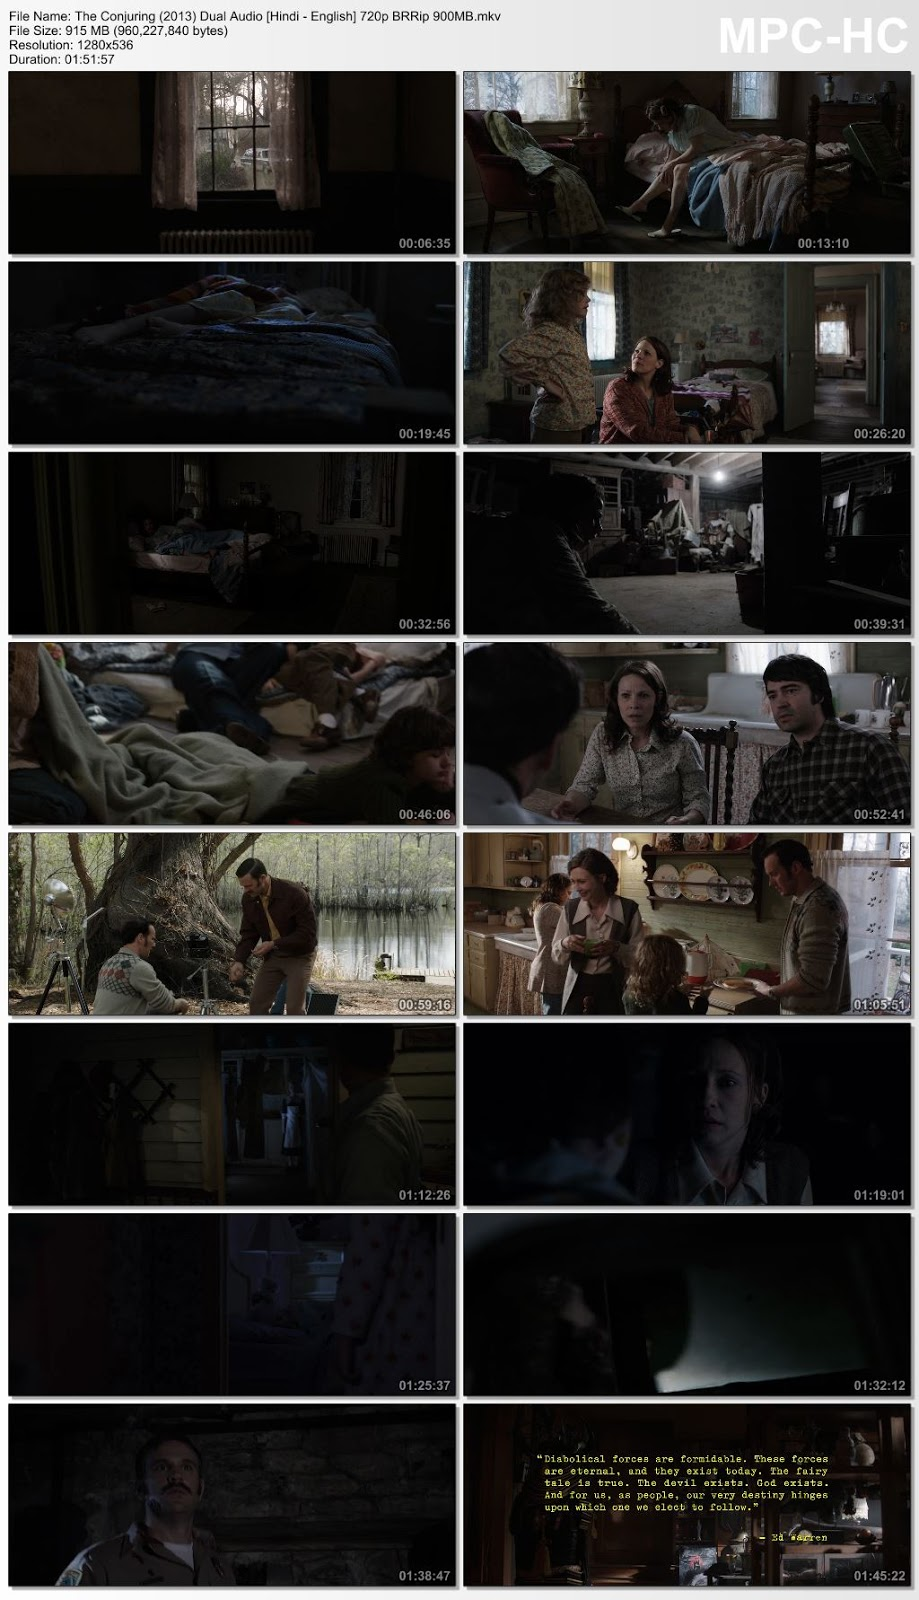 The Conjuring (2013) Dual Audio [Hindi – English] 720p BRRip 900MB Desirehub